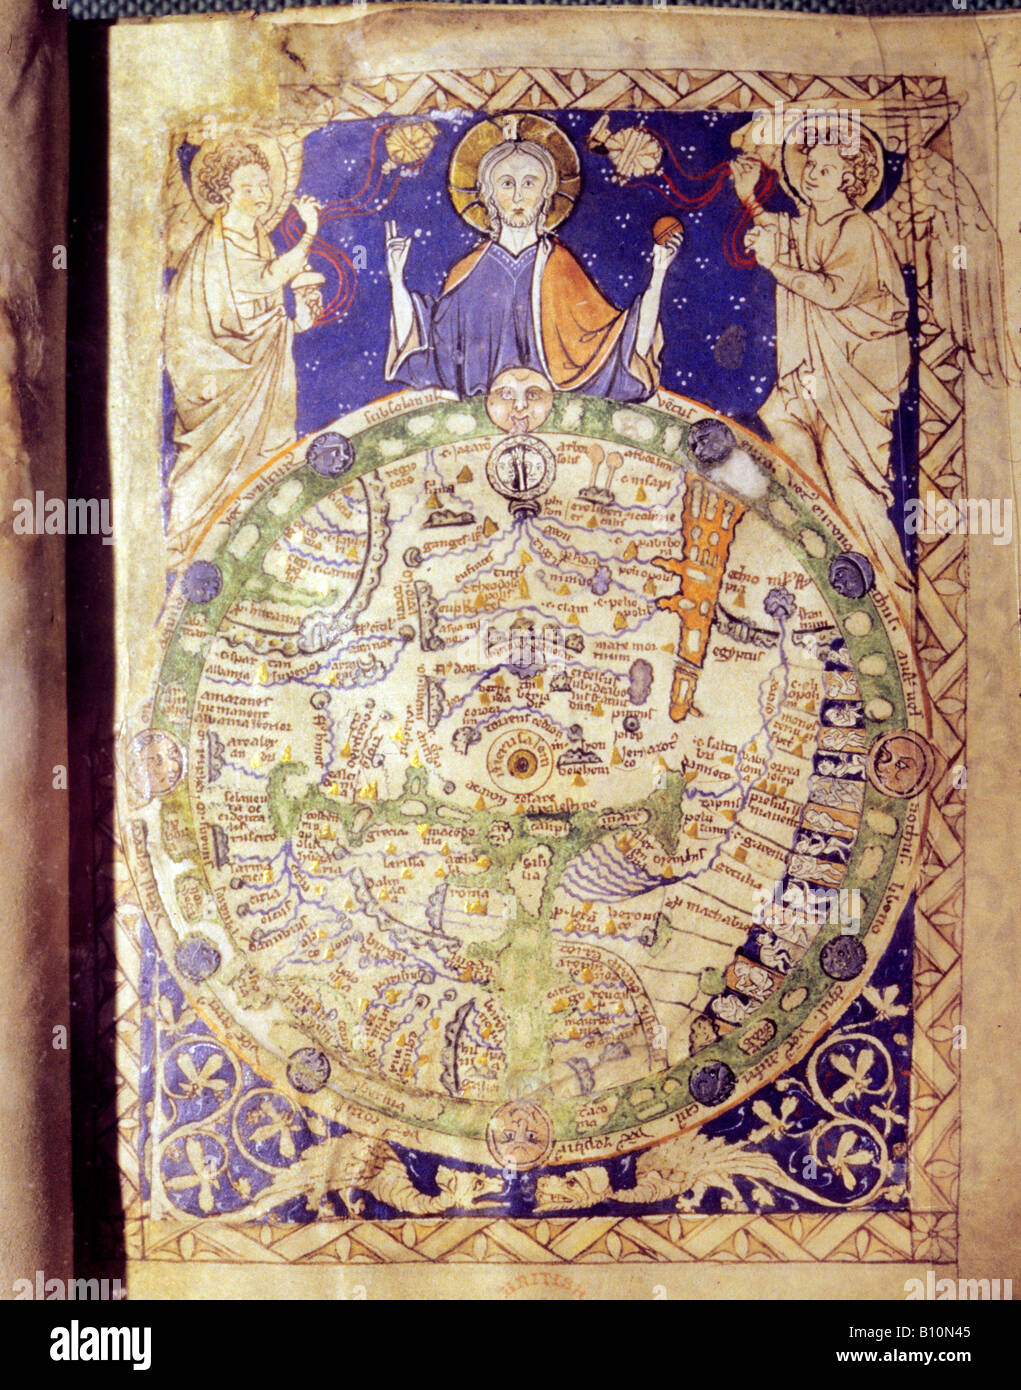 Medieval world map with jerusalem at centre 1275 copyright ancient medieval world map with jerusalem at centre 1275 copyright ancient art architecture collection ltd gumiabroncs Image collections